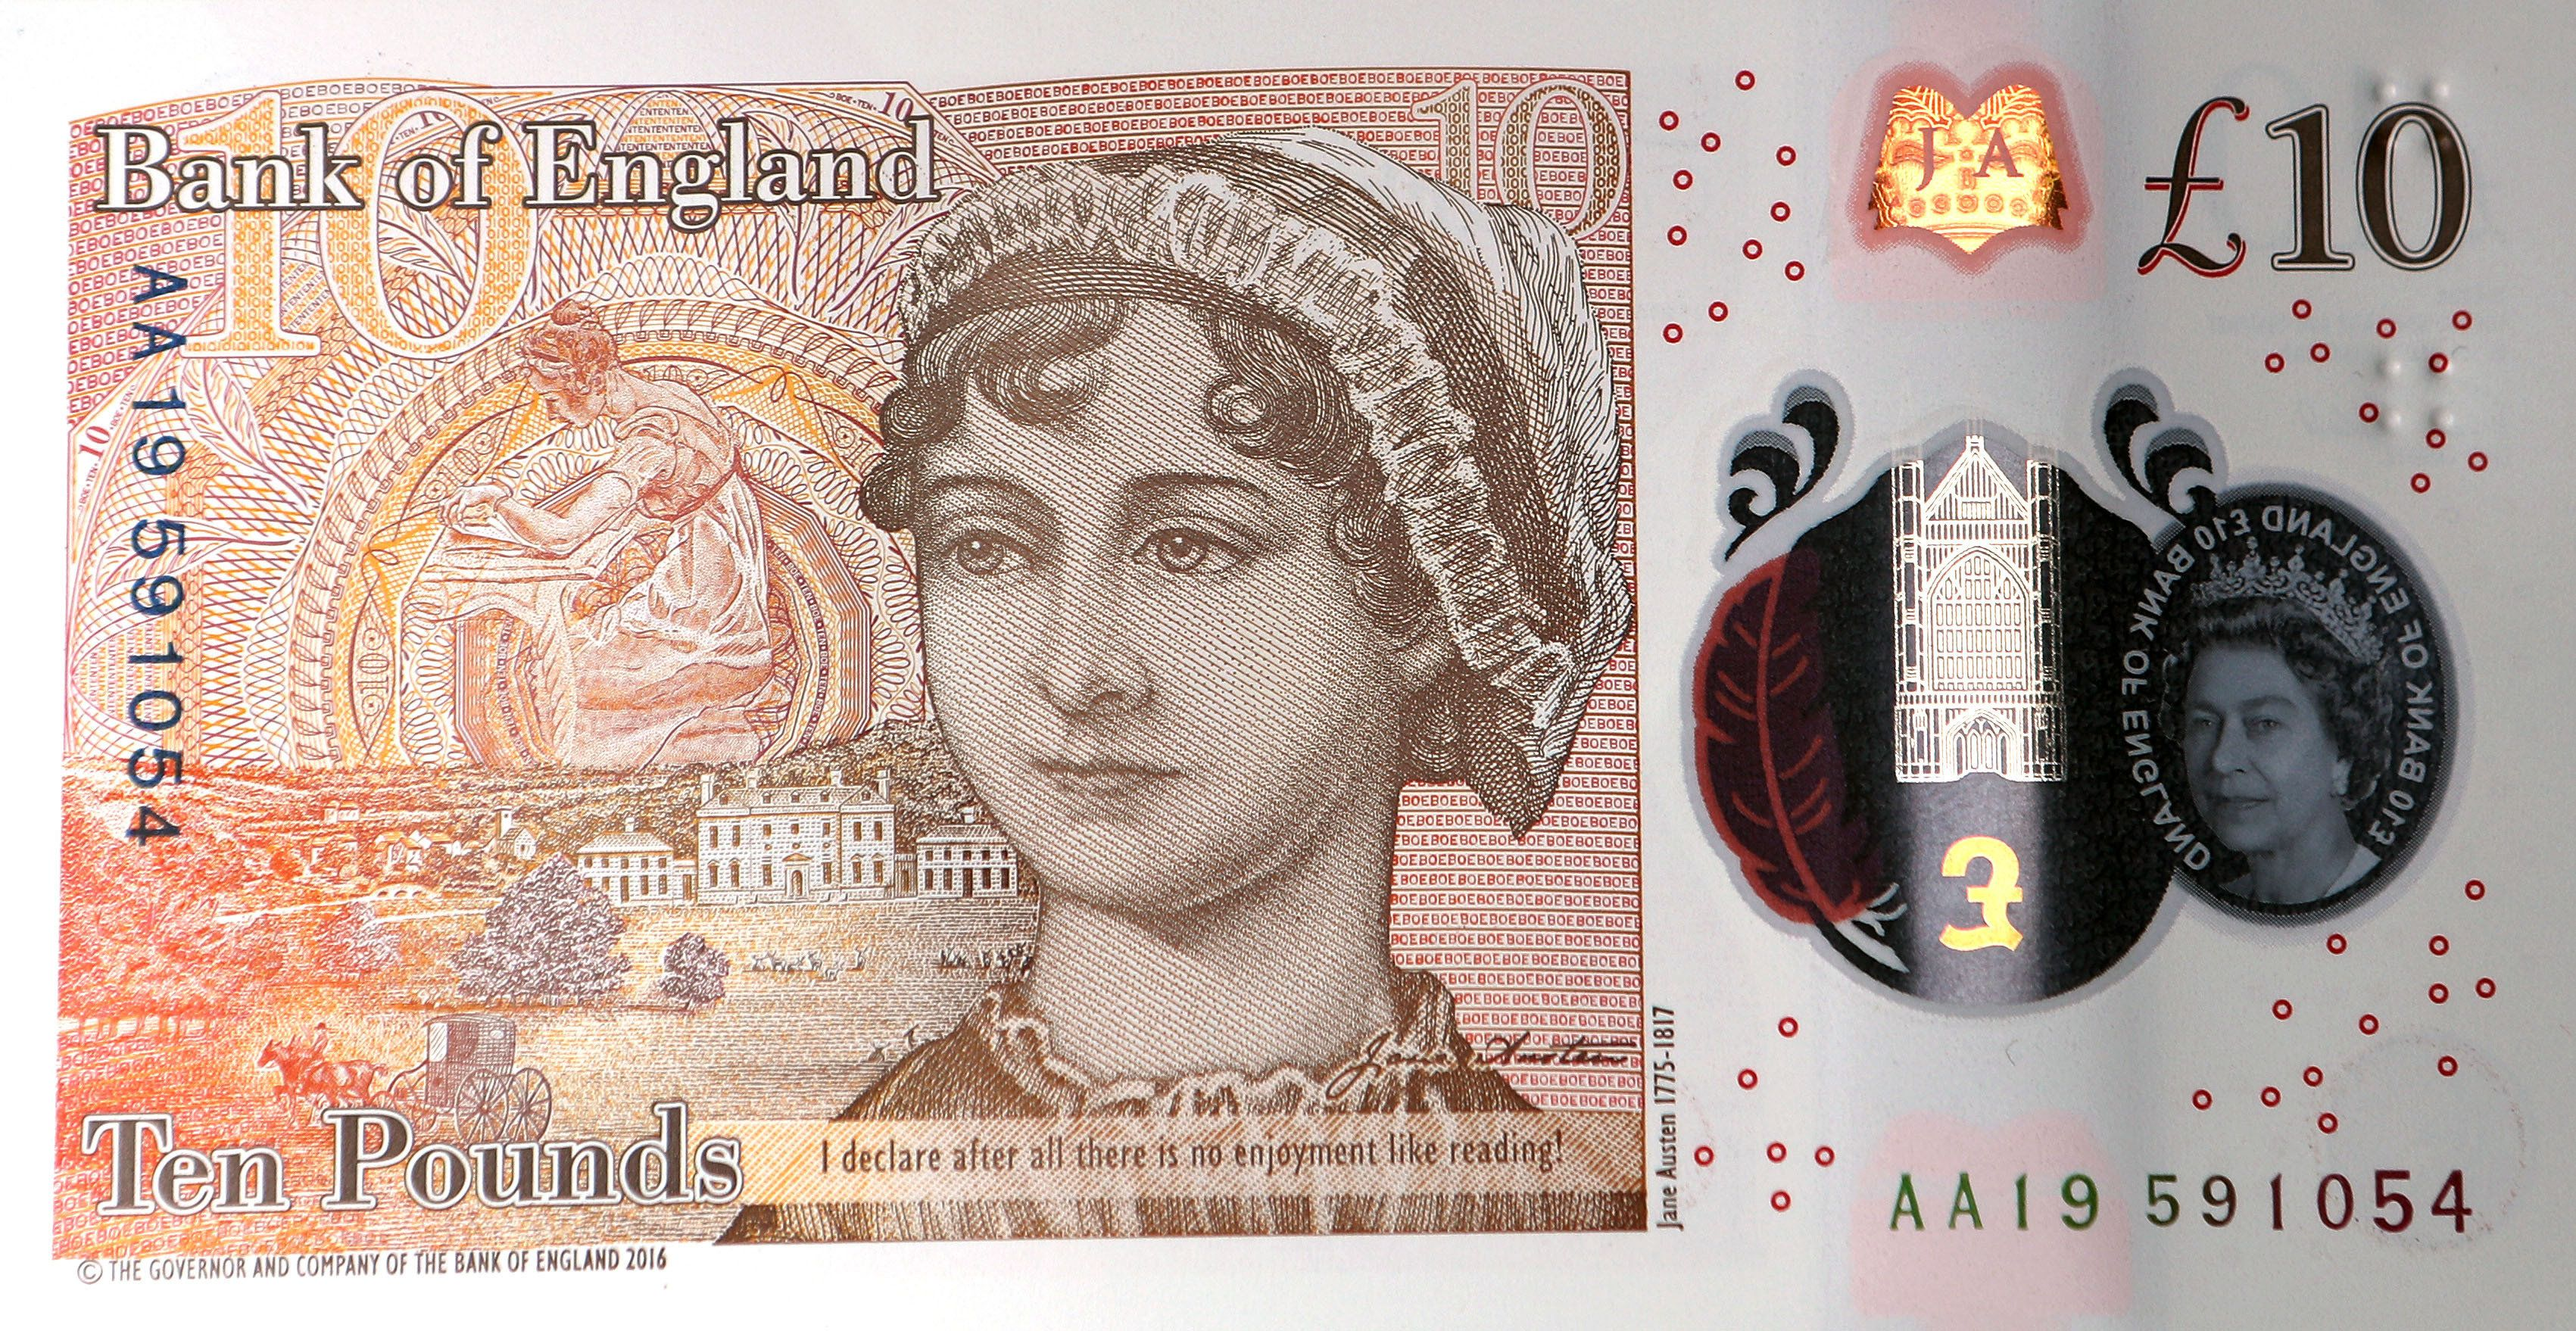 New plastic £10 note already on sale on eBay before official release